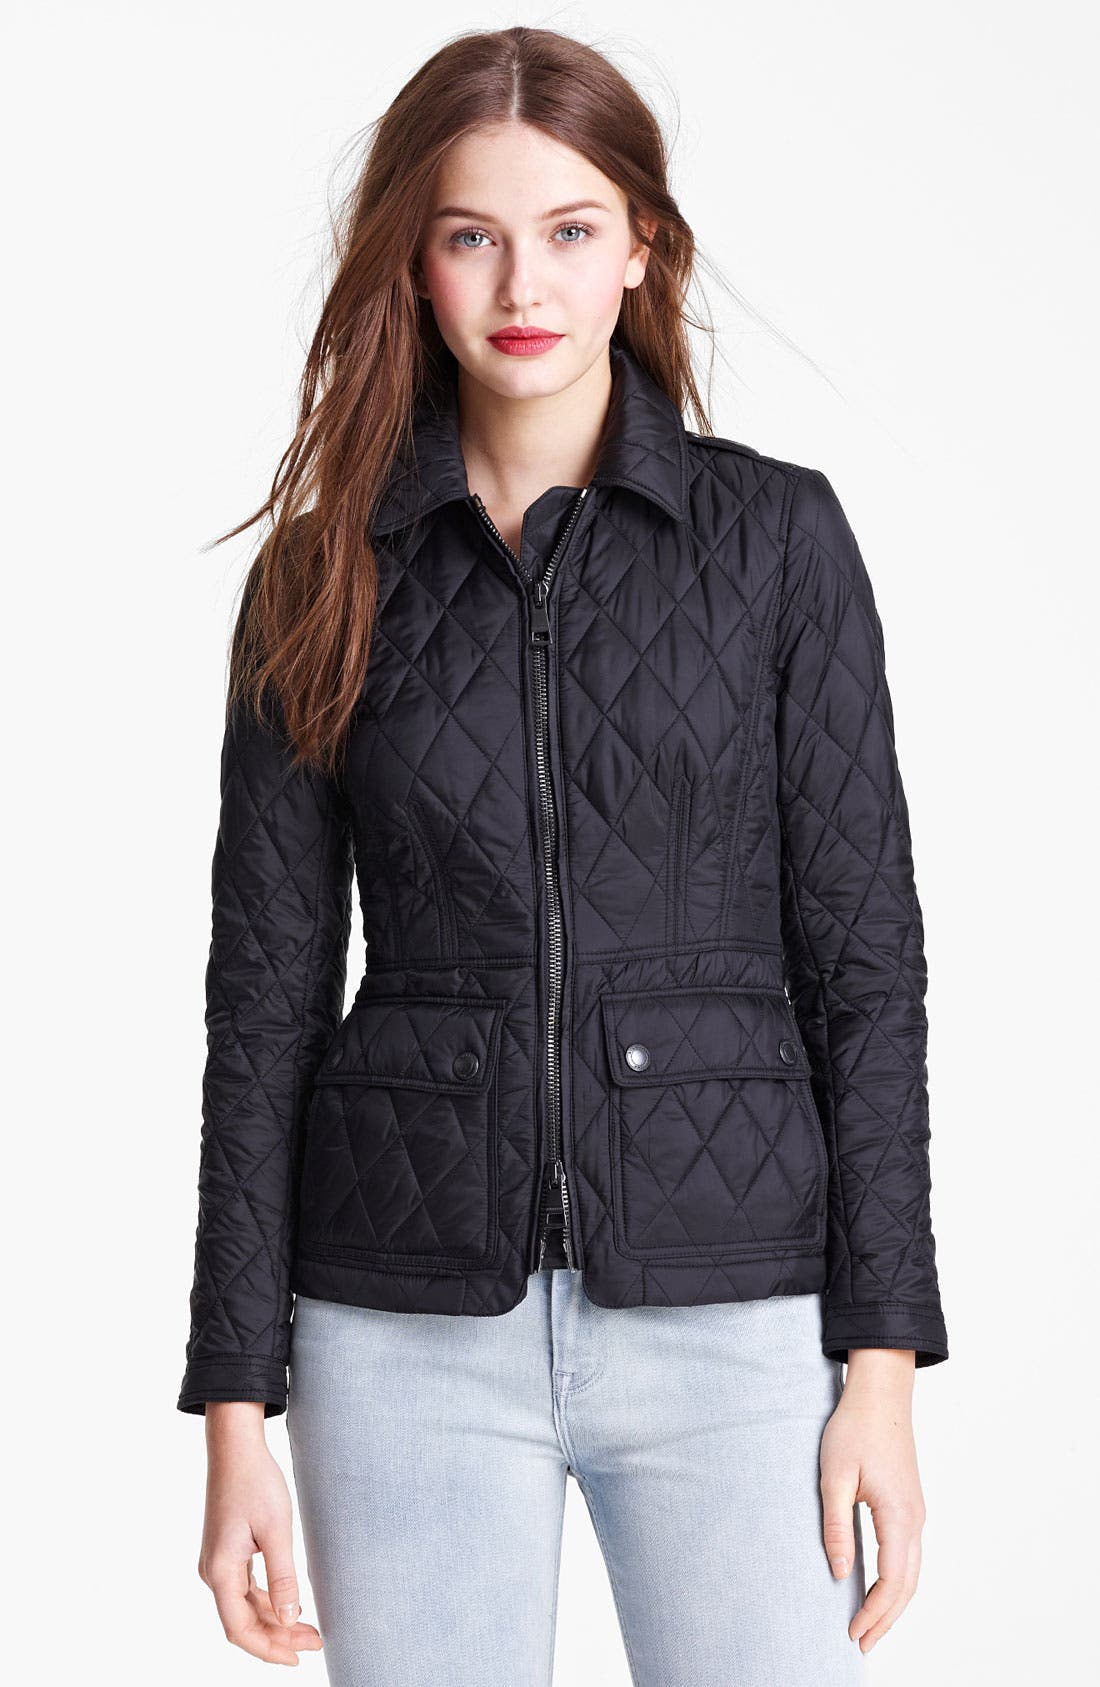 'Ivymoore' Quilted Zip Jacket,                             Main thumbnail 1, color,                             001